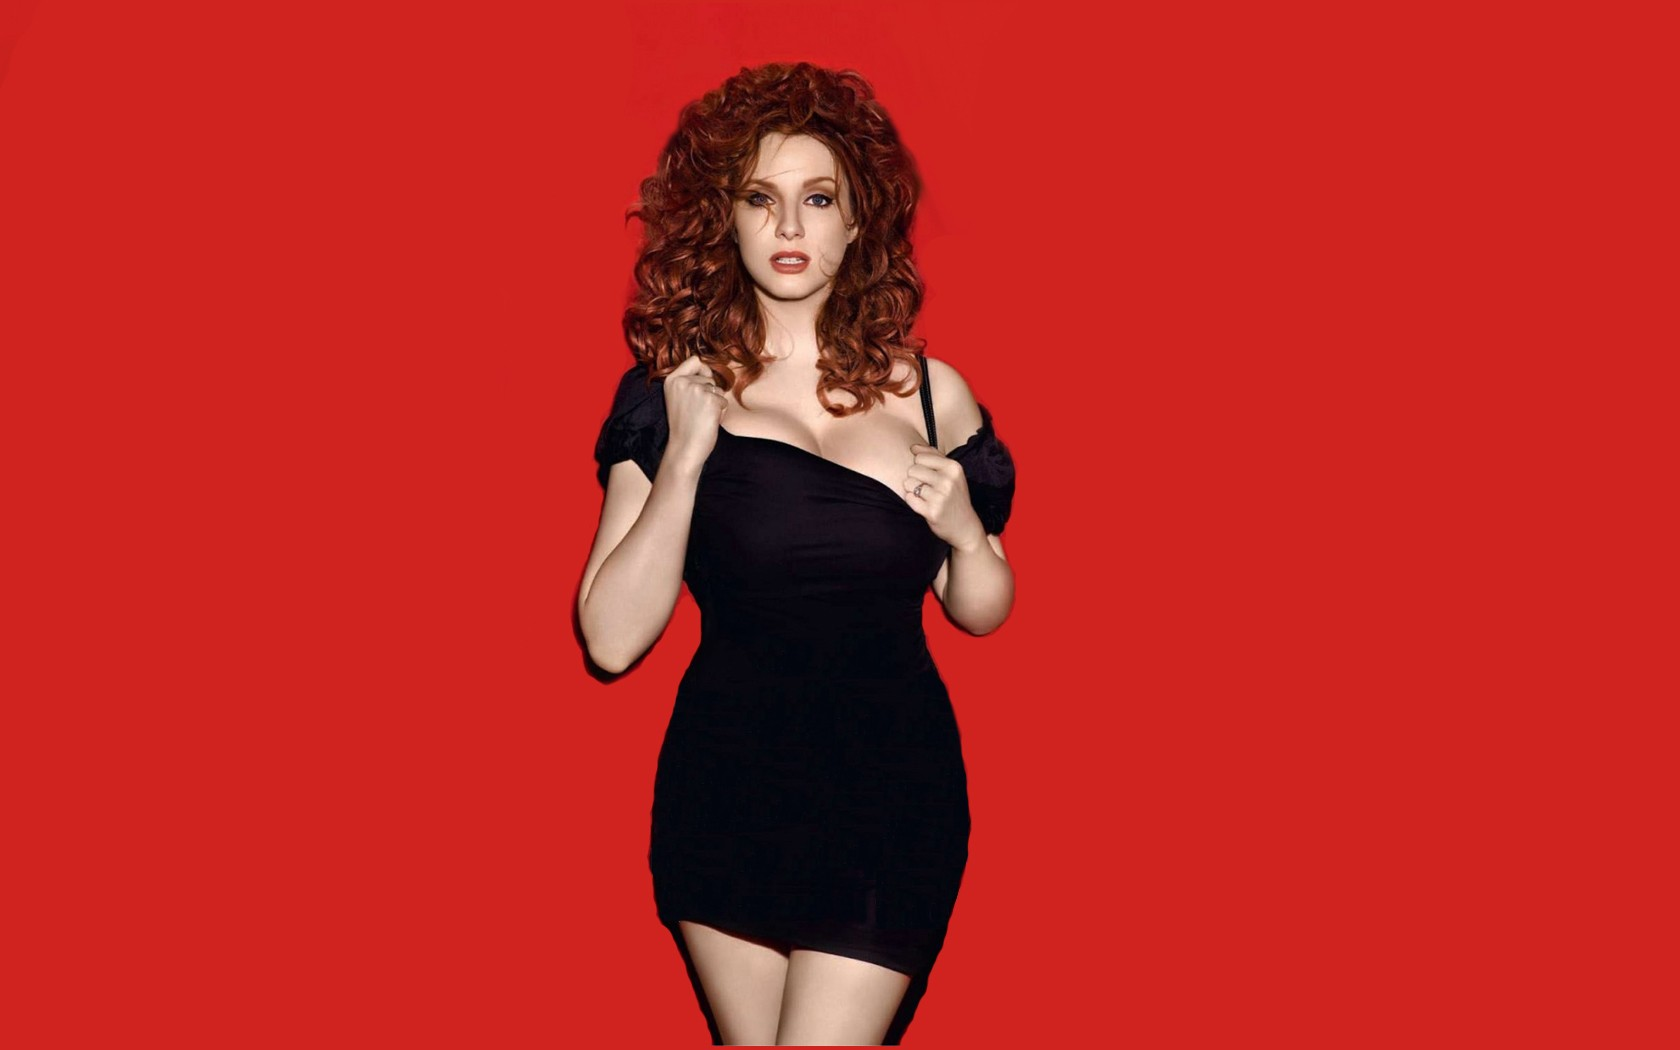 Christina Hendricks Wallpaper 1680x1050 Christina Hendricks 1680x1050